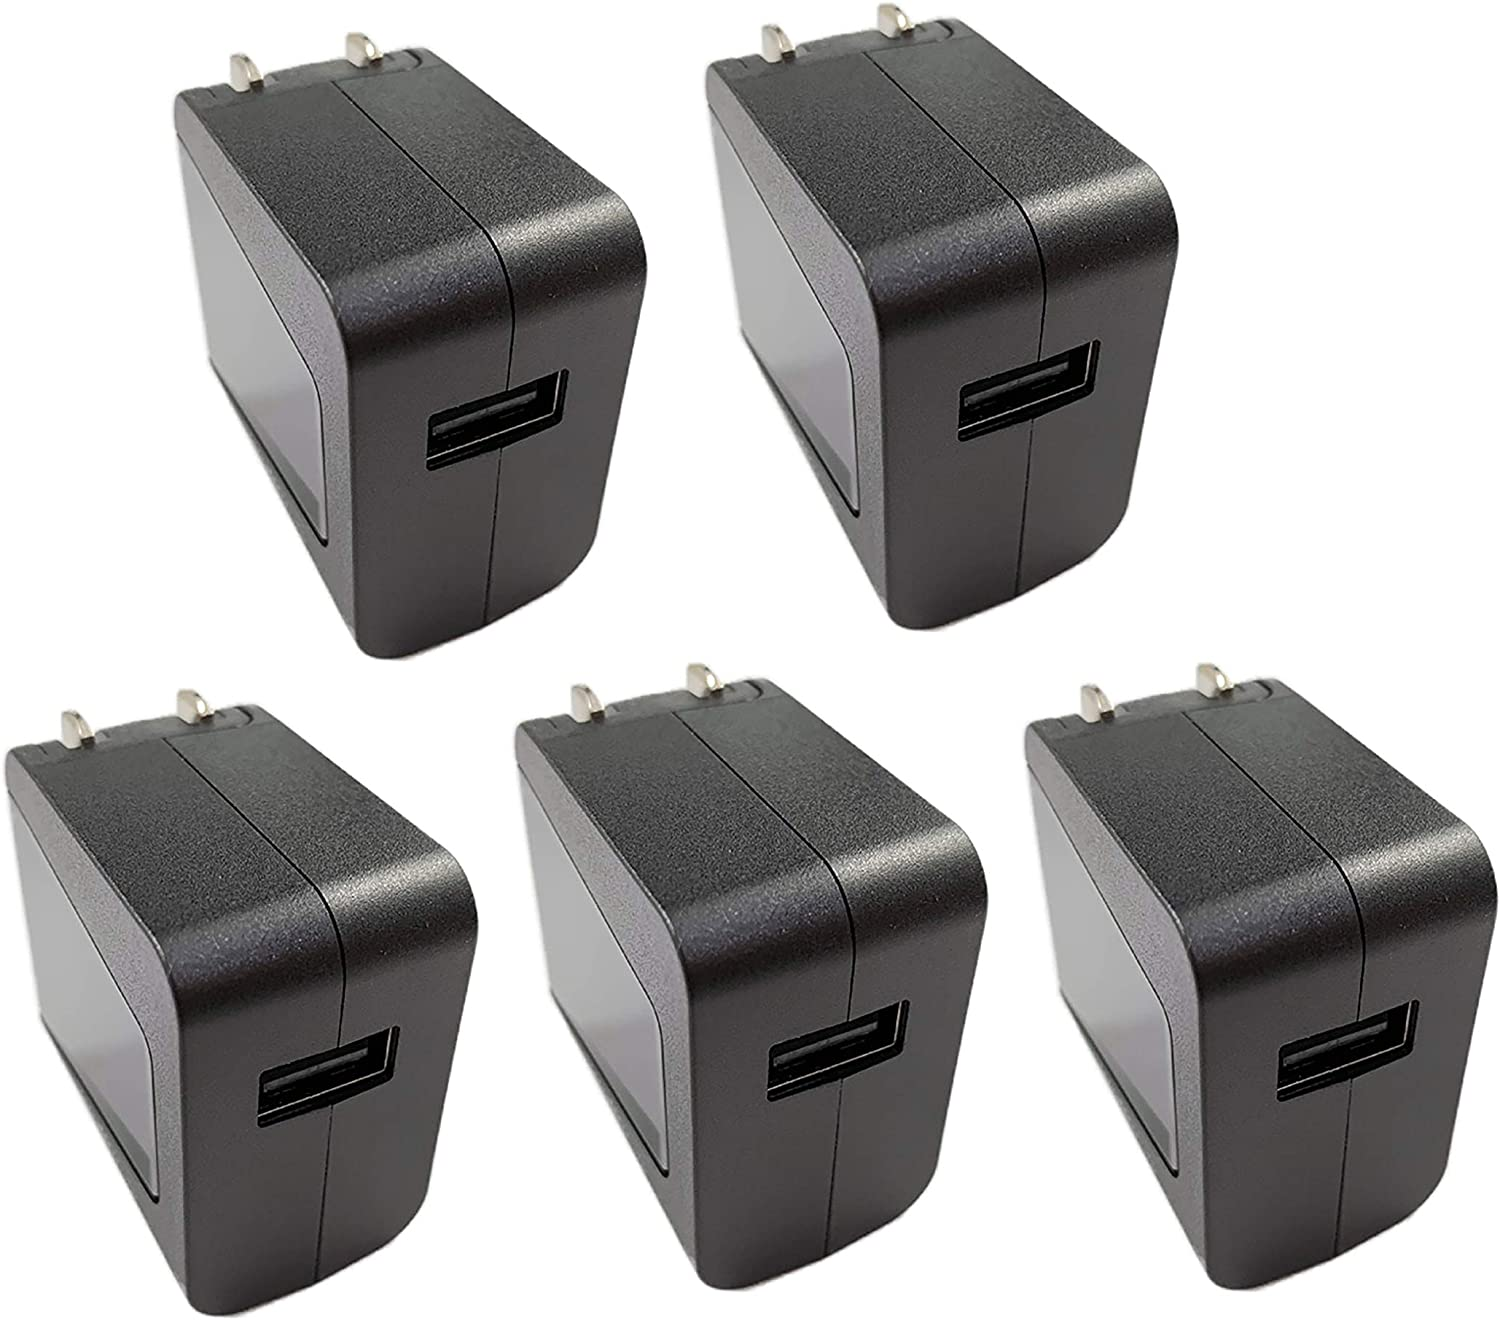 (5-pack) 5.2V 2.1A Universal Travel Adapter International Wall Charger Quick Charger Plug Cube for iPhone XS/Max/XR/X/8/7/Plus iPad Pro/Air 2/Mini 3/Mini 4 Samsung Edge LG HTC Nokia Huawei Moto Kindle